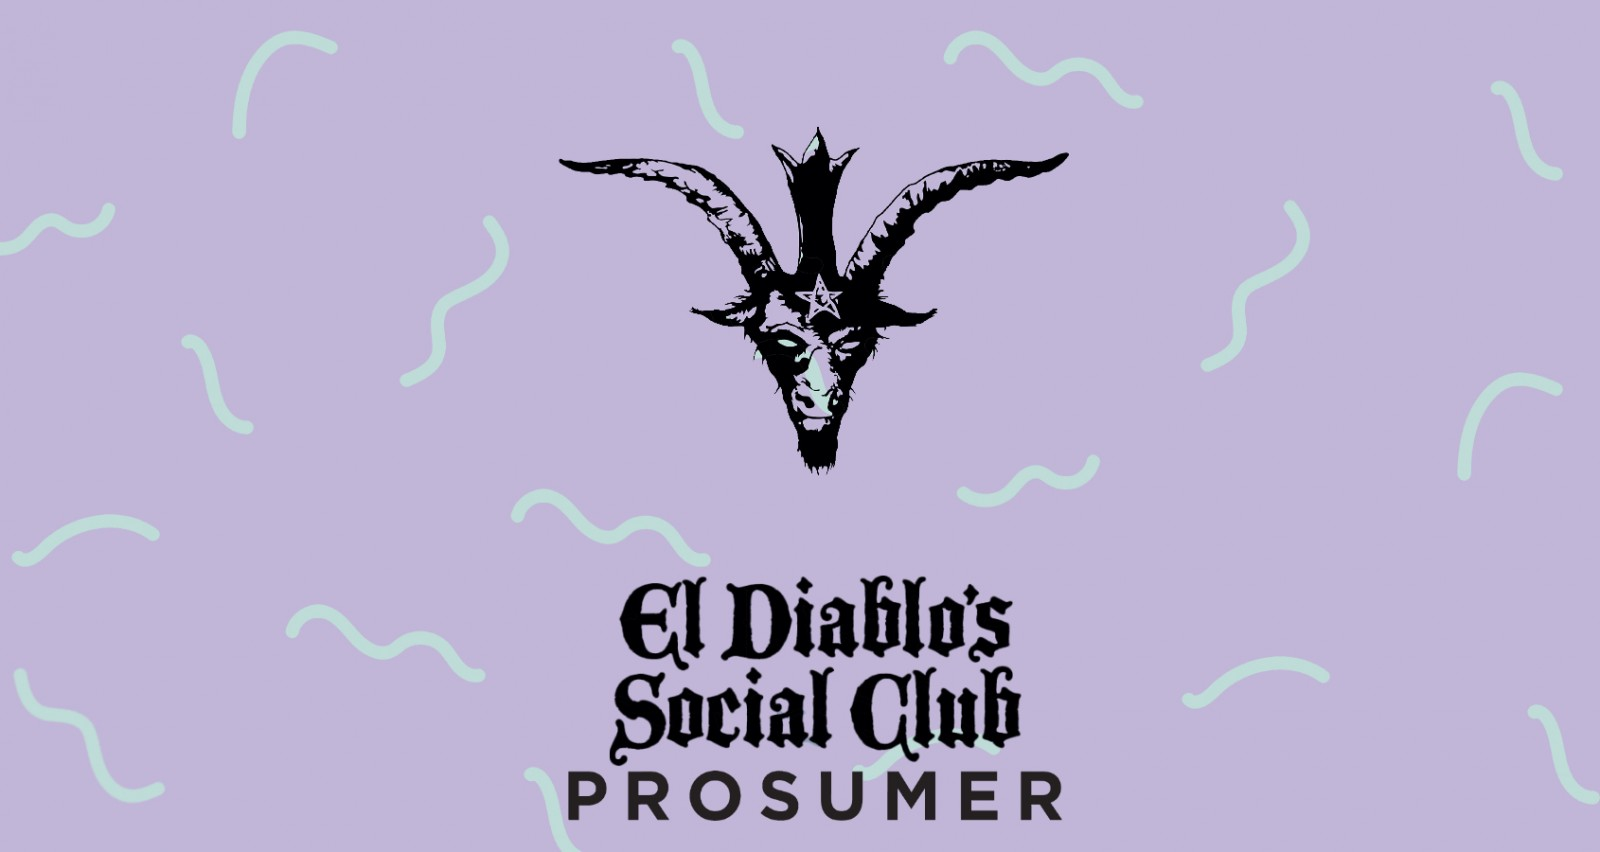 El Diablo's Social Club presents Prosumer